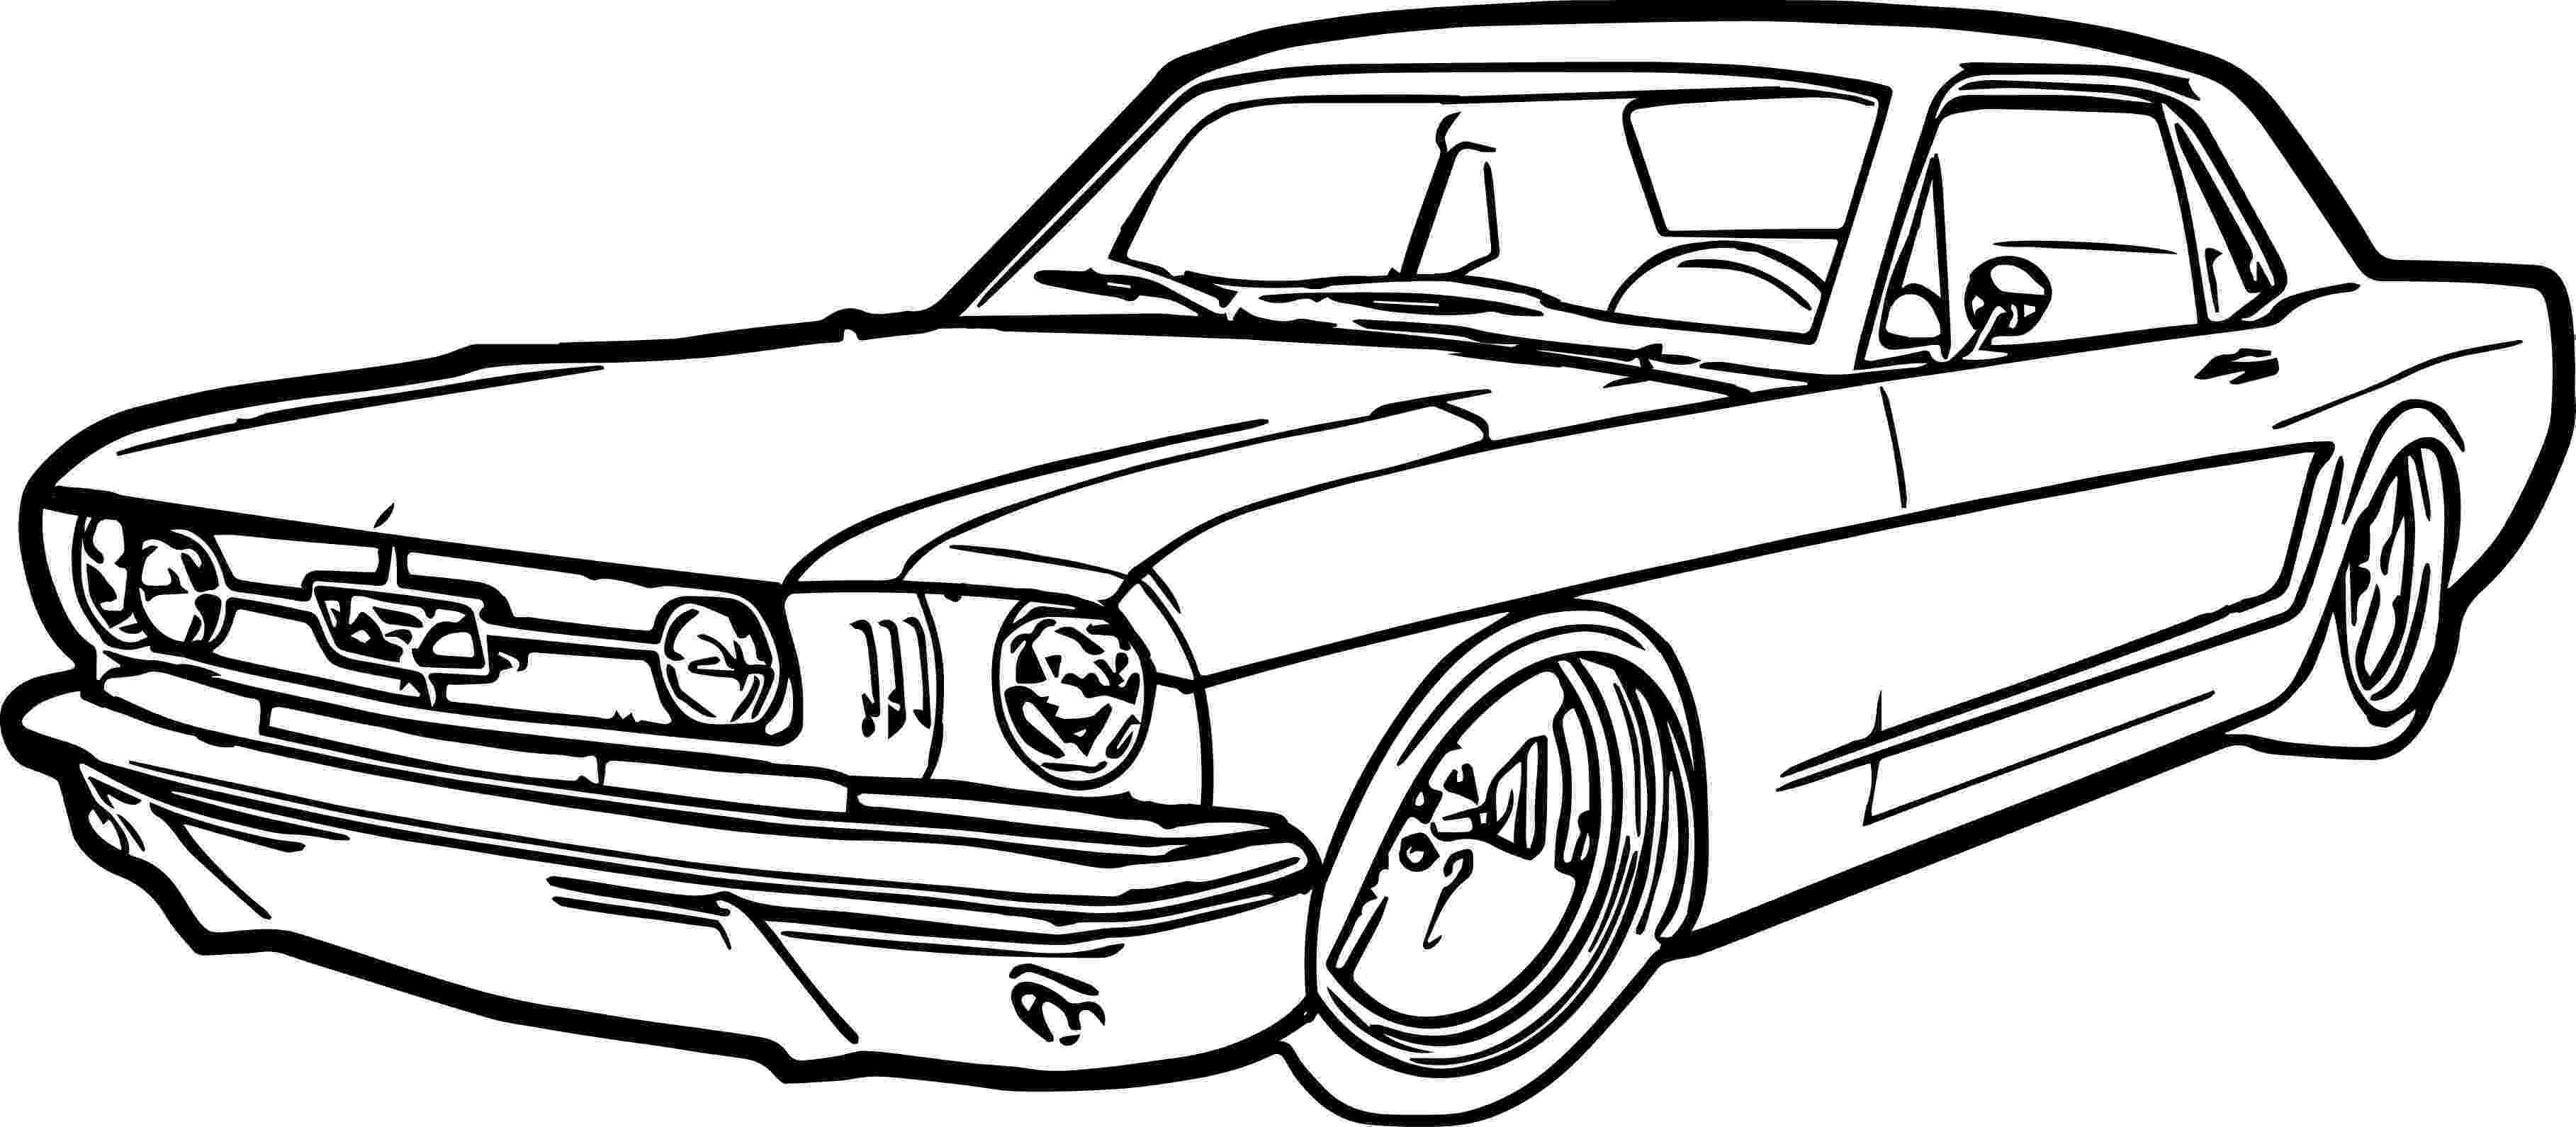 coloring pages sports cars honda sport coloring page honda car coloring pages cars pages coloring sports